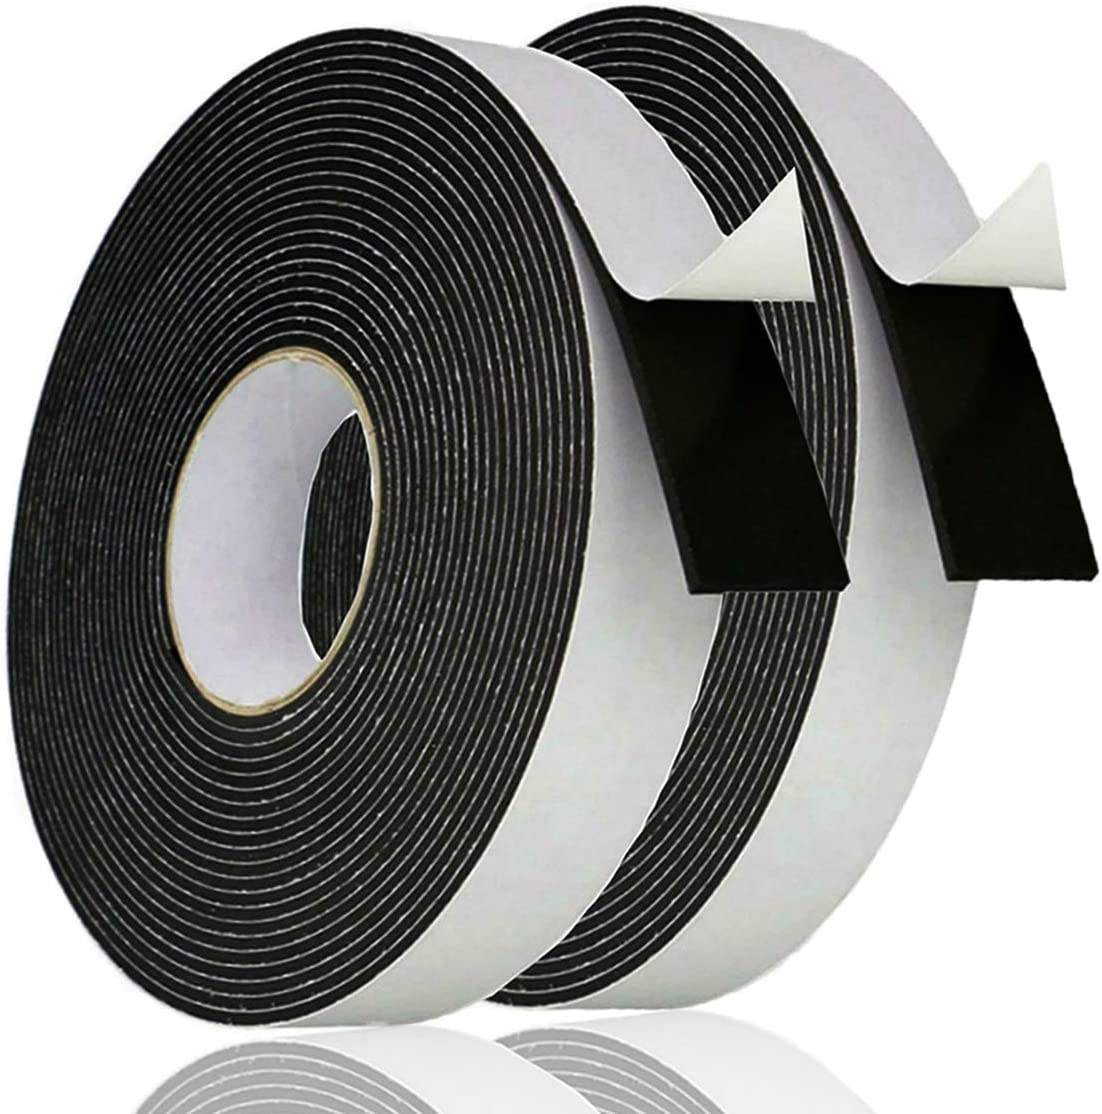 Adhesive Foam Tape Weather Strip for Doors Sticky Foam Strip Insulation Soundproofing Tape Single Sided Closed Cell Foam Tape 1/8 Inch Thick x 1 Inch Wide,2 Rolls